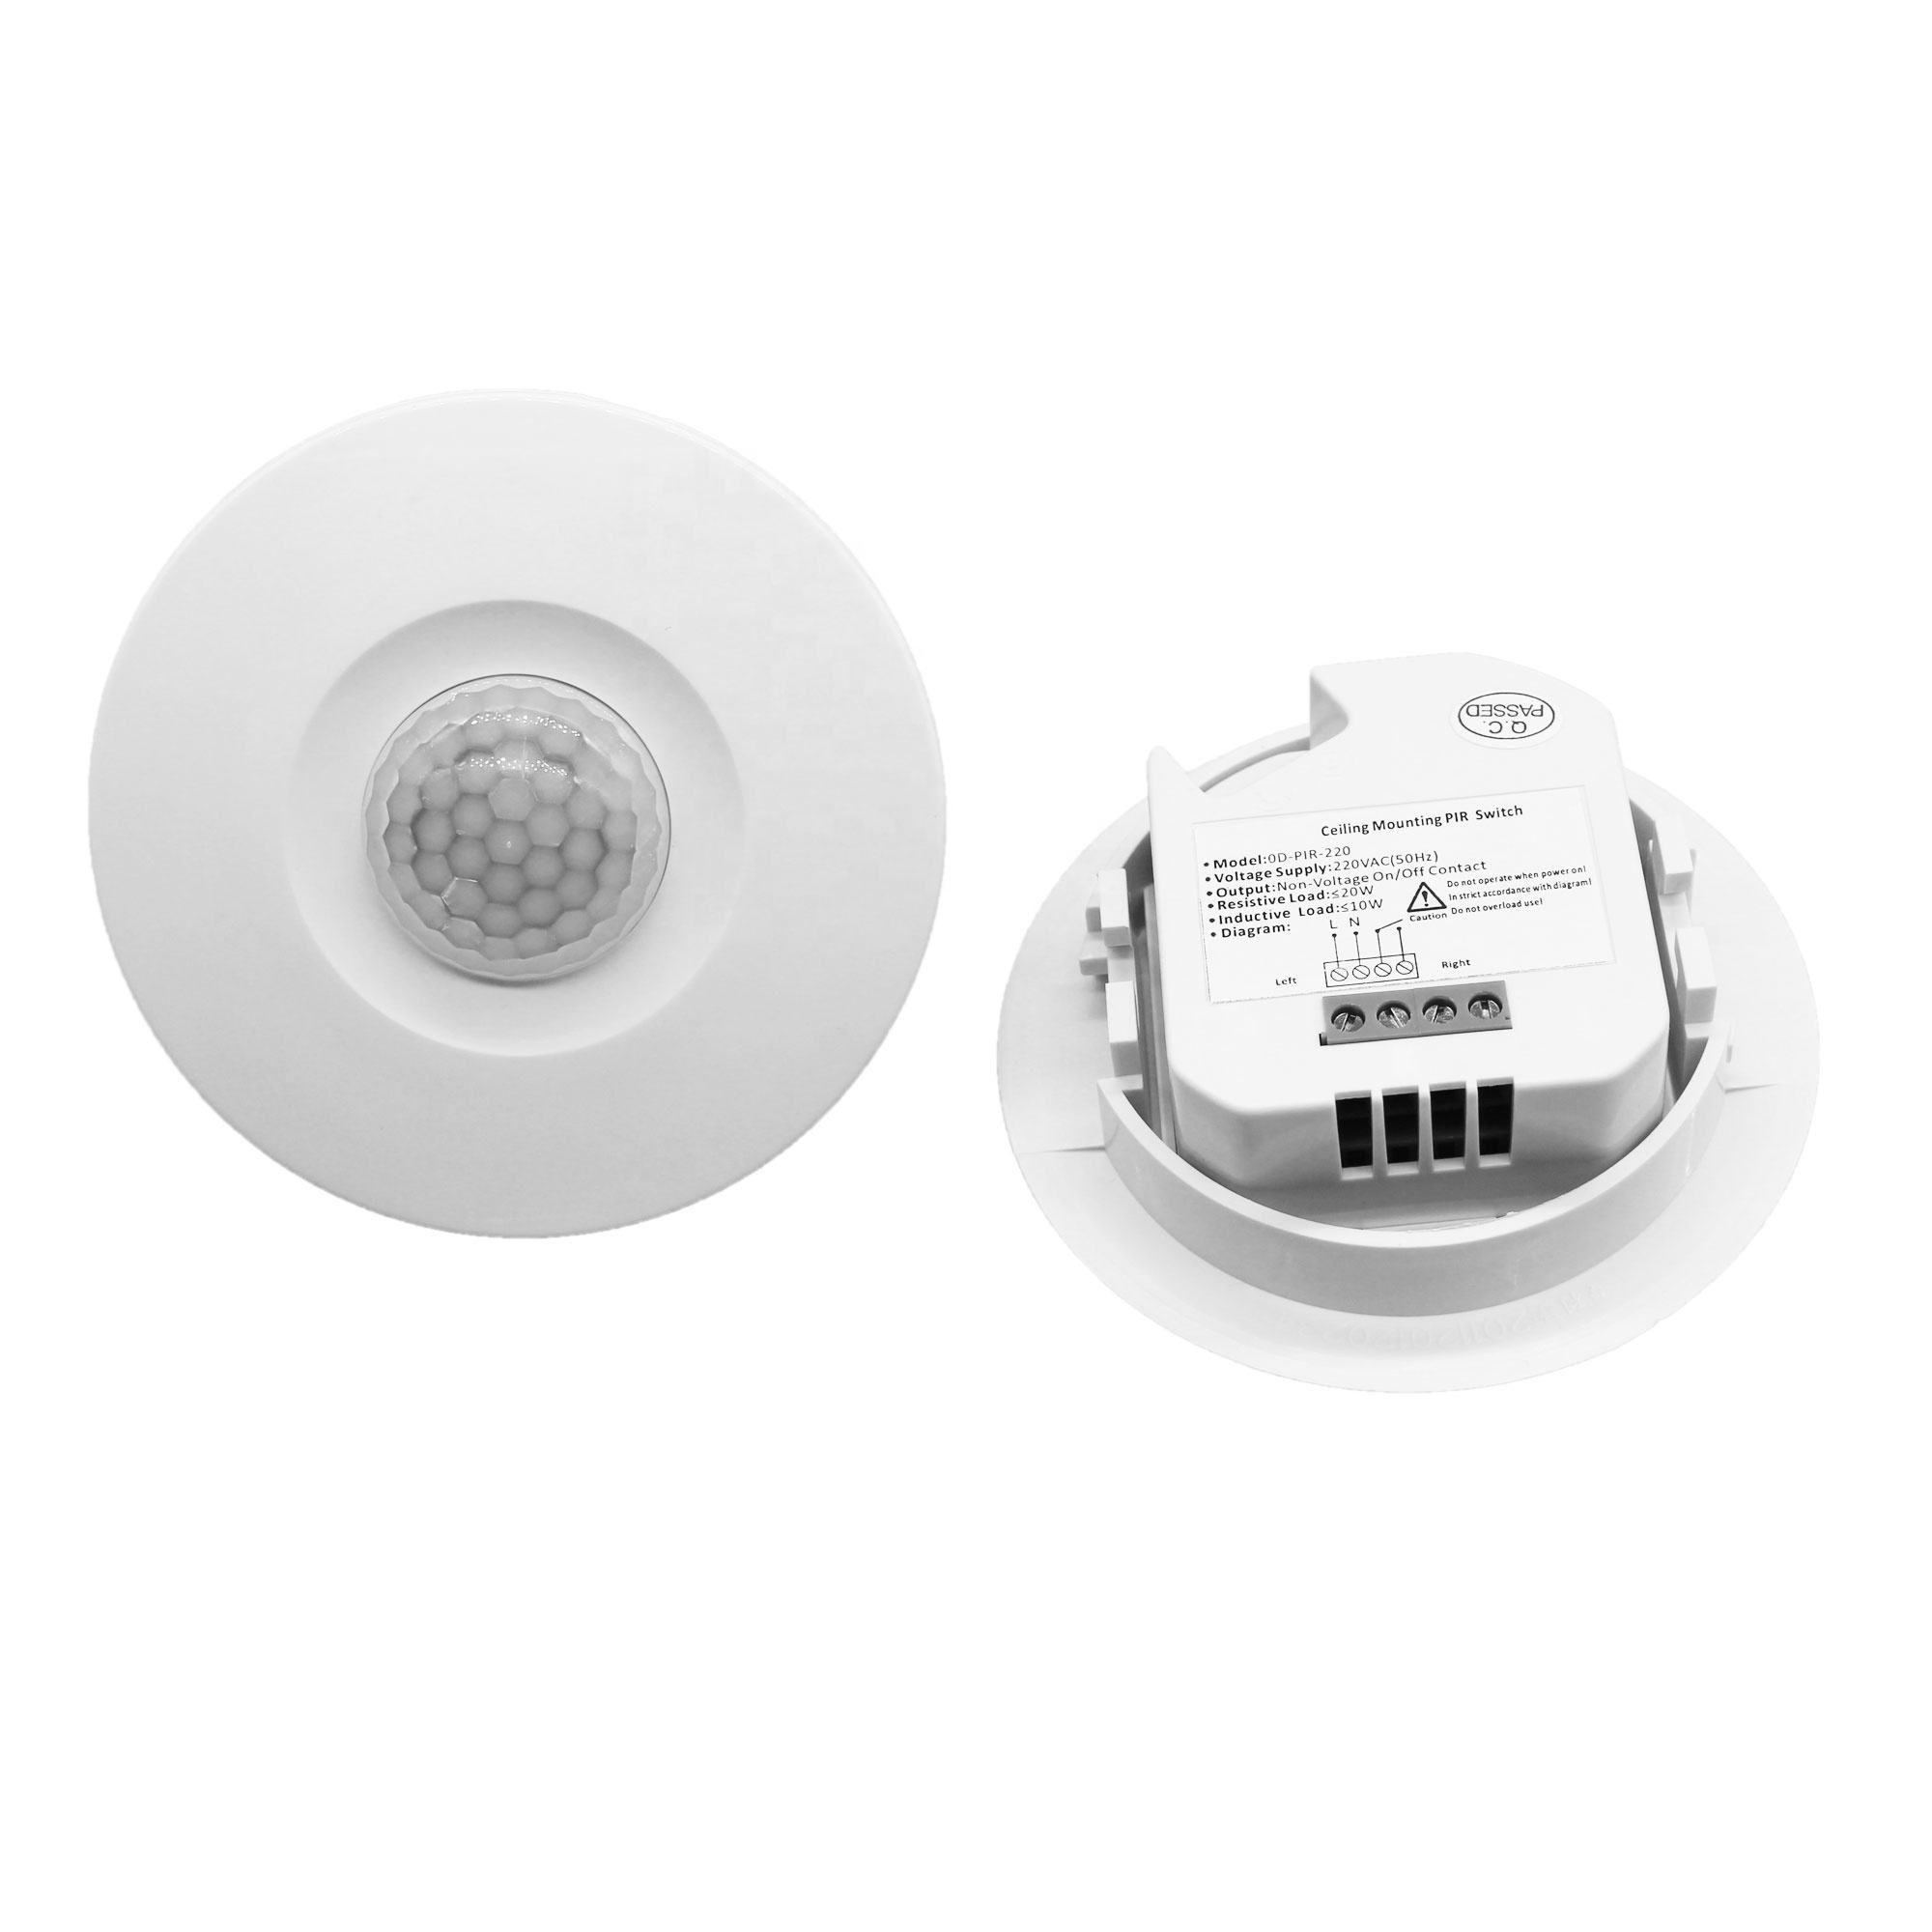 24V Dry Contact Output Ceiling Mounted 360 Degree Pir Motion Sensor